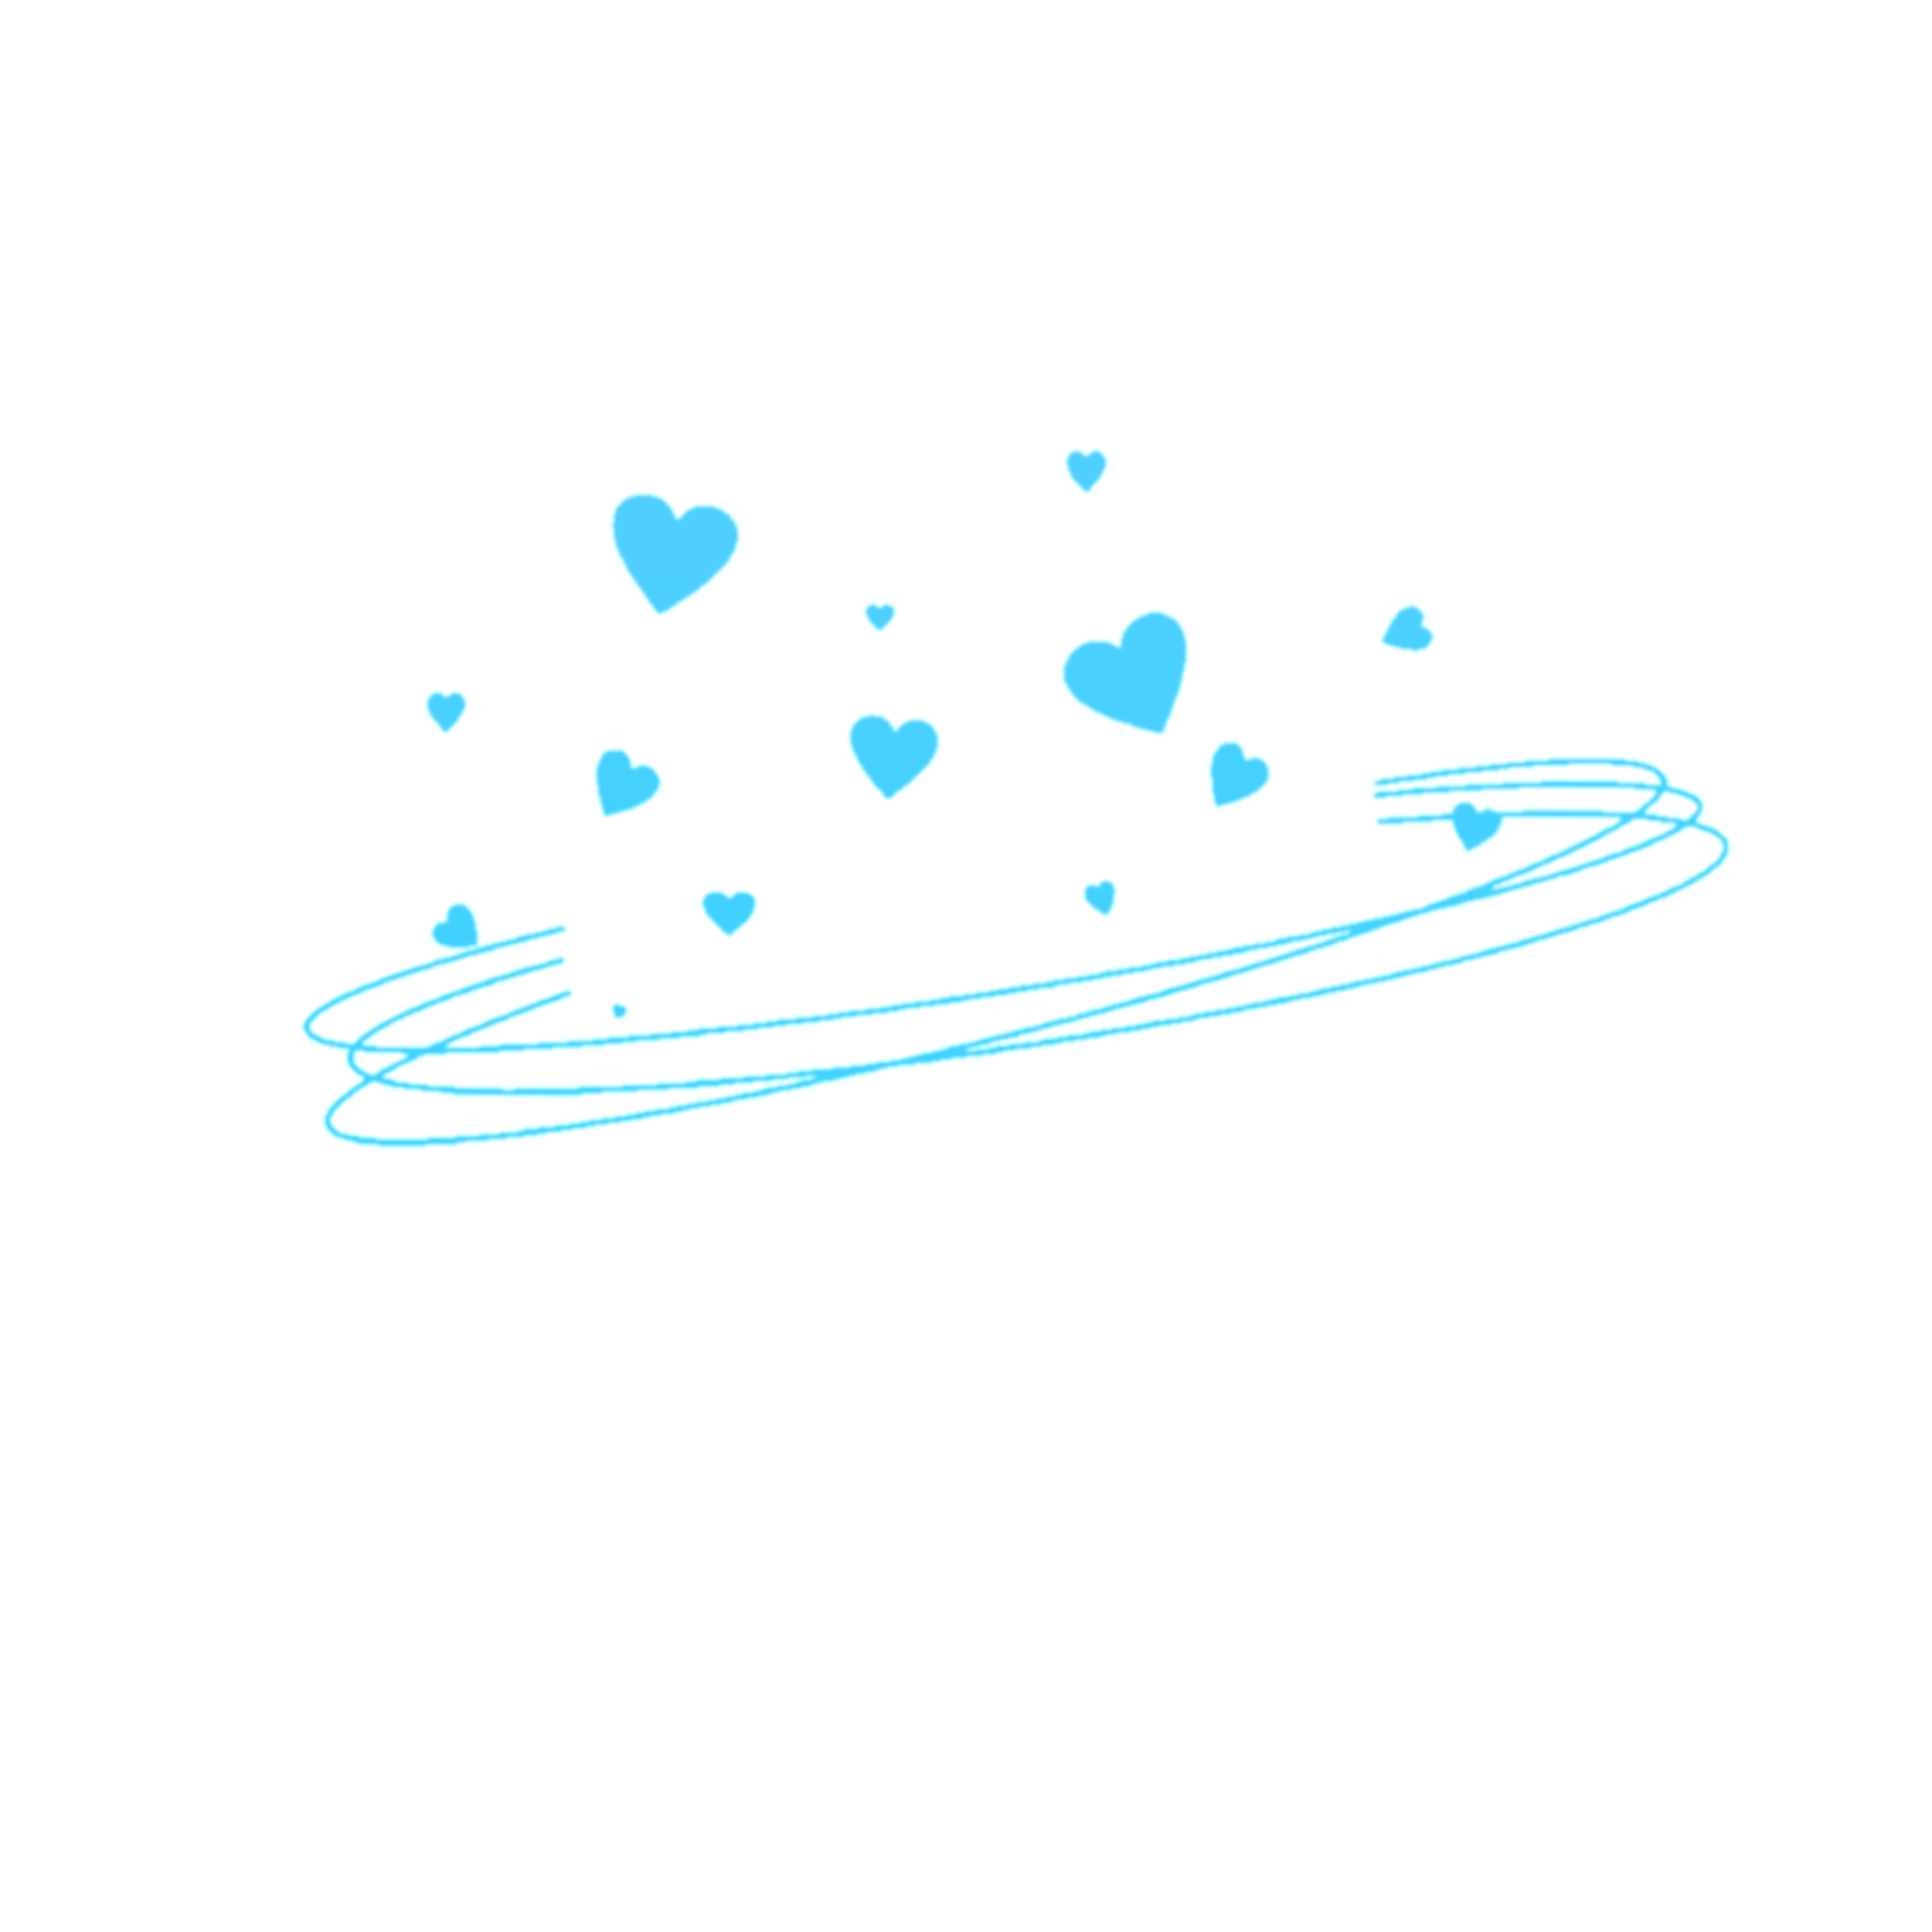 Blue Aesthetic Stickers Png